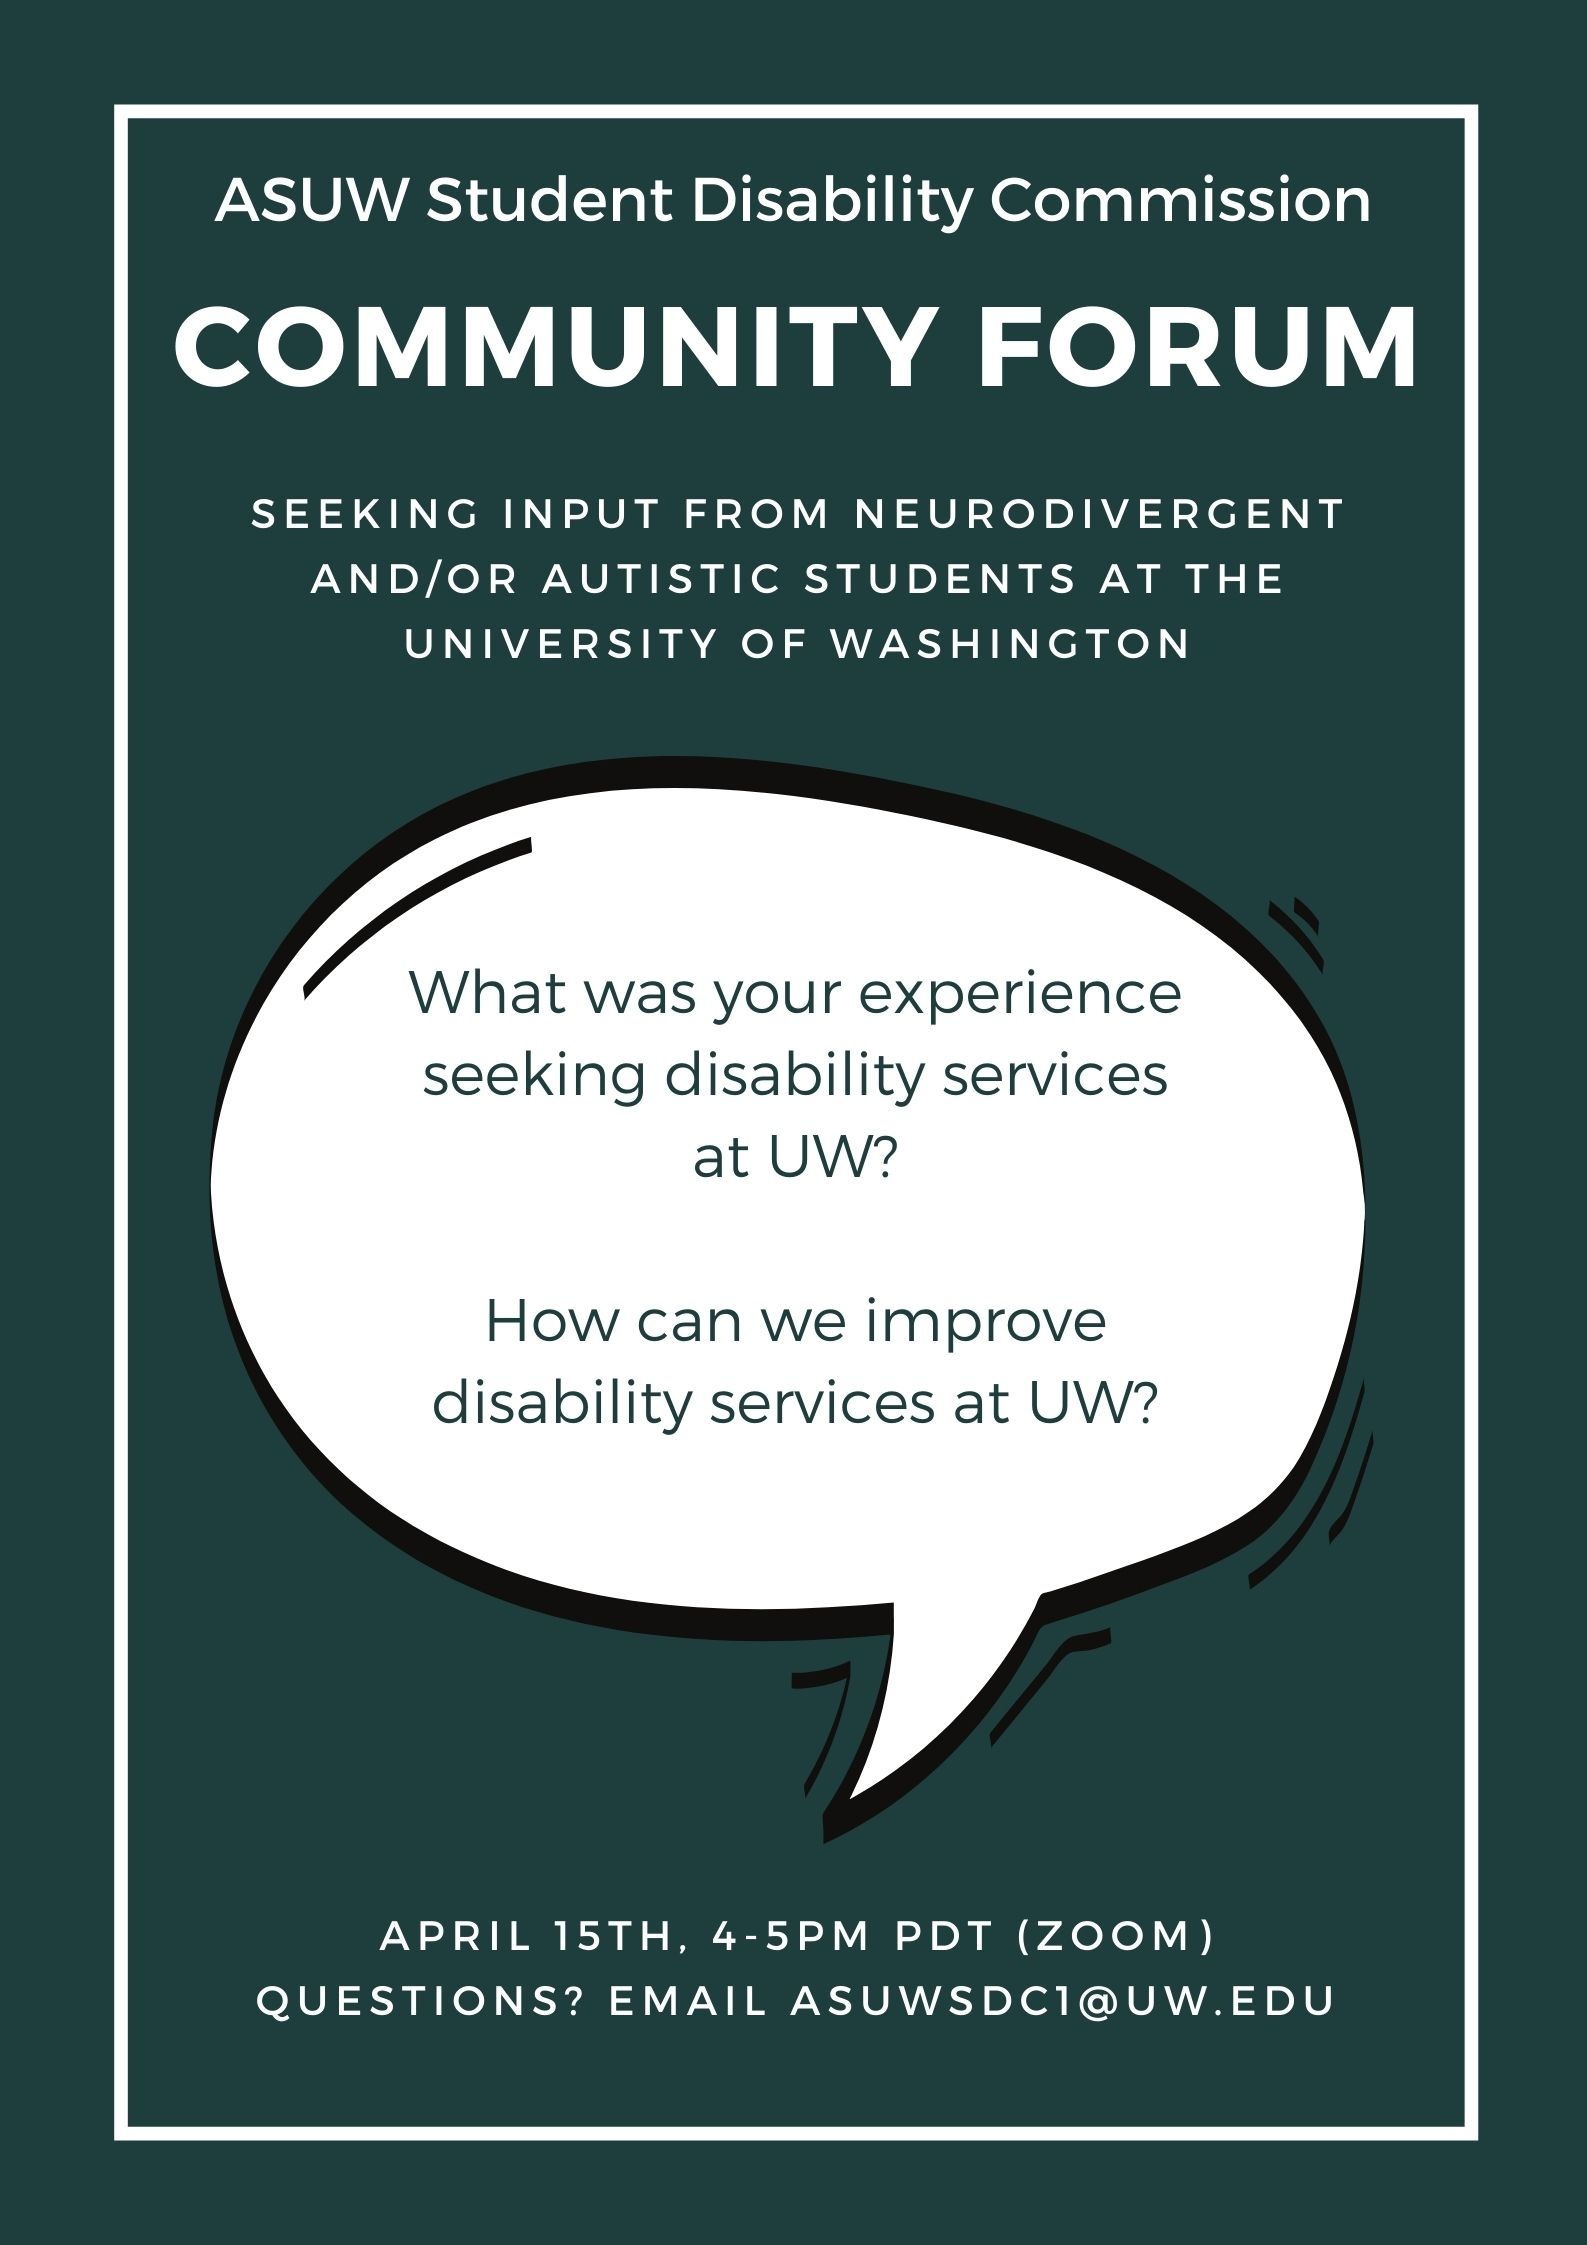 """dark green background with white text that reads """"ASUW Student Disability Commission COMMUNITY FORUM. SEEKING INPUT FROM NEURODIVERGENT AND/OR AUTISTIC STUDENTS AT THE UNIVERSITY OF WASHINGTON. April 15th 4-5pm PDT (Zoom). Questions? Email asuwsdc1@uw.edu"""" with a white speech bubble in the center that has green text that reads """"What was your experience seeking disability services at UW? How can we improve disability services at UW?"""